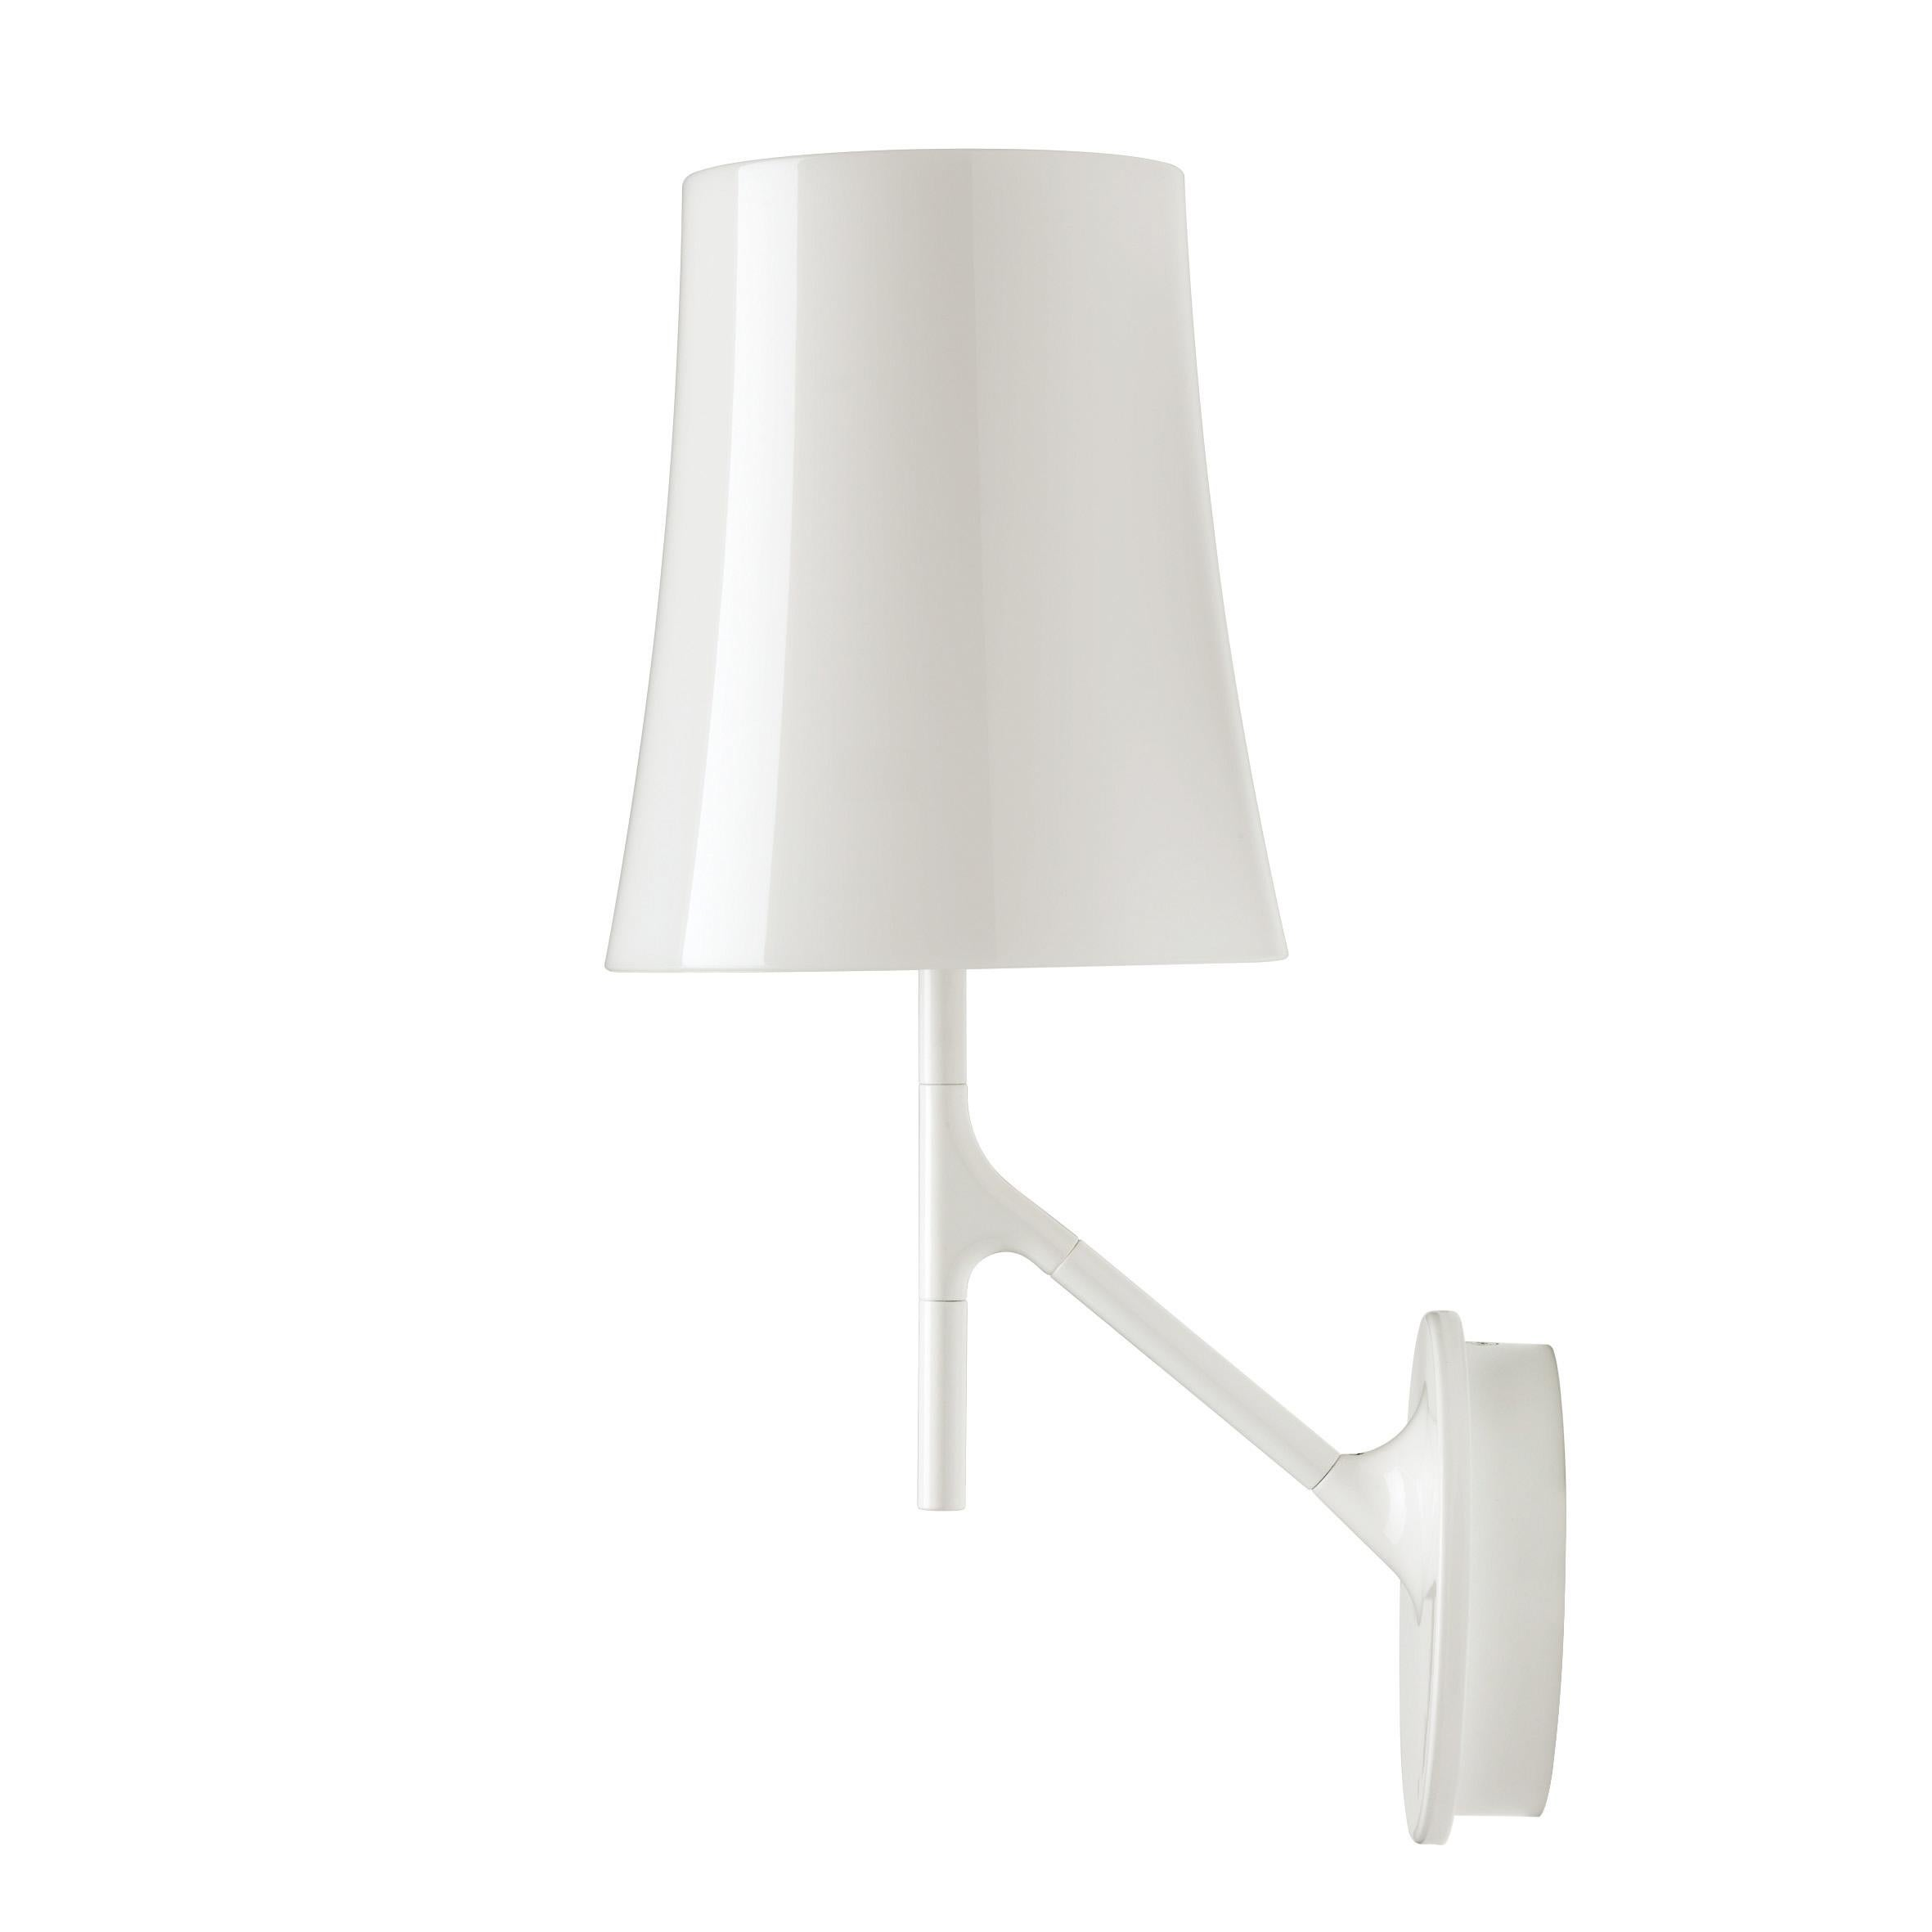 Foscarini Birdie Wall Lamp in White by Ludovica and Roberto Palomba